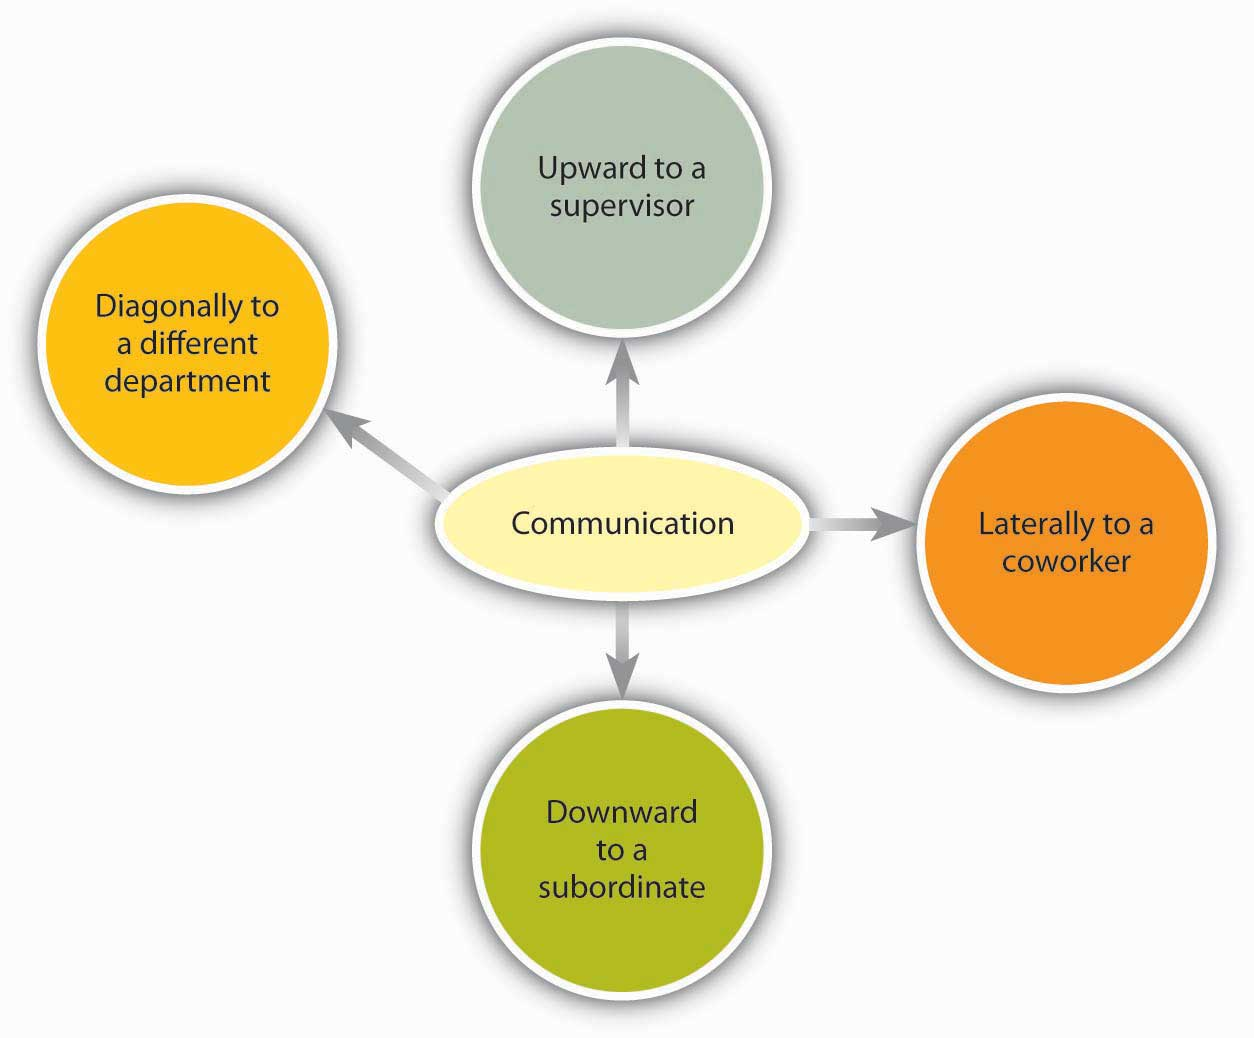 use and develop systems that promote communication 2 essay Use and promote systems that develop communication essay jennifer king use and develop systems that promote communication 13 analyse the barriers and challenges to.